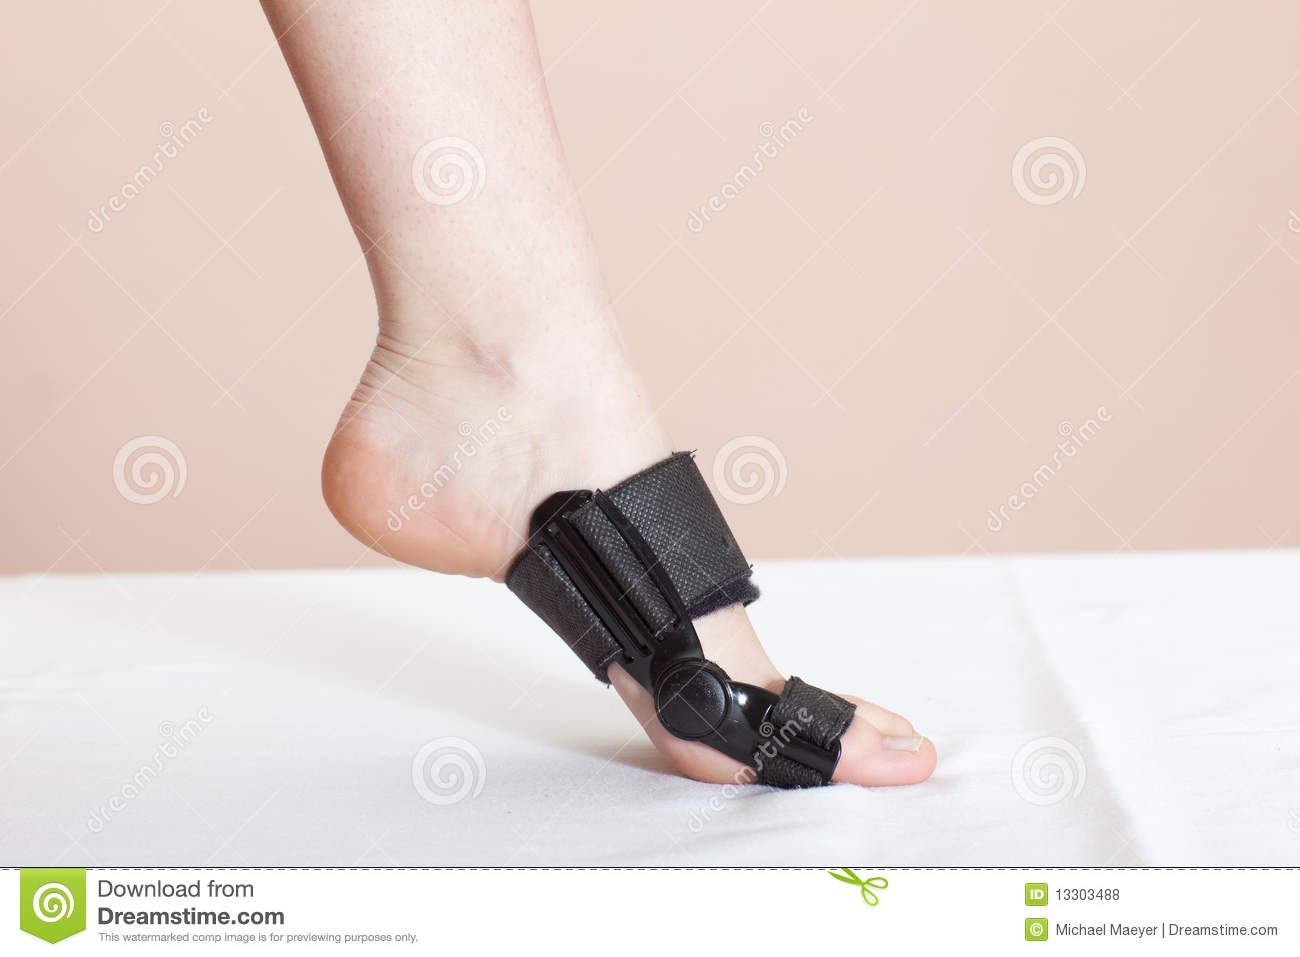 Foot Injury (toe) Royalty Free Stock Photos - Image: 13303488